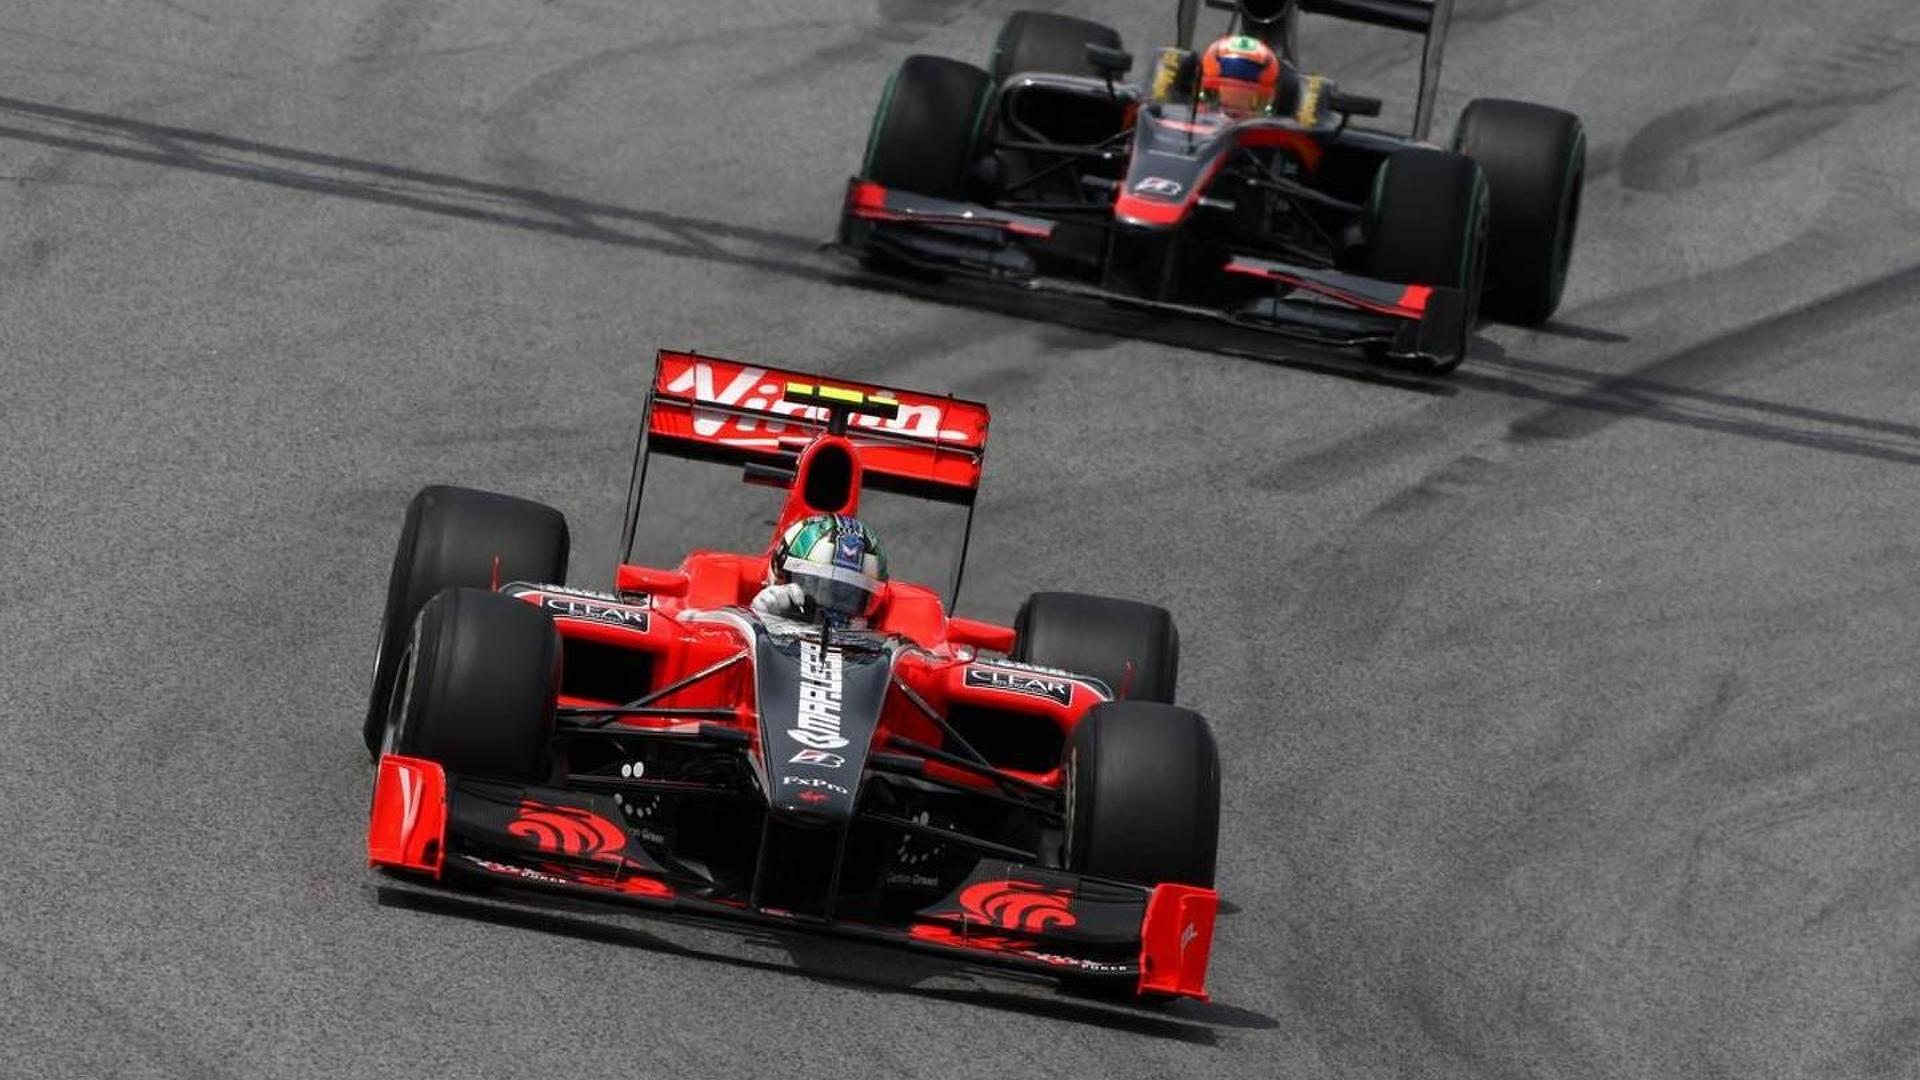 F1 could lose up to two teams - Ecclestone